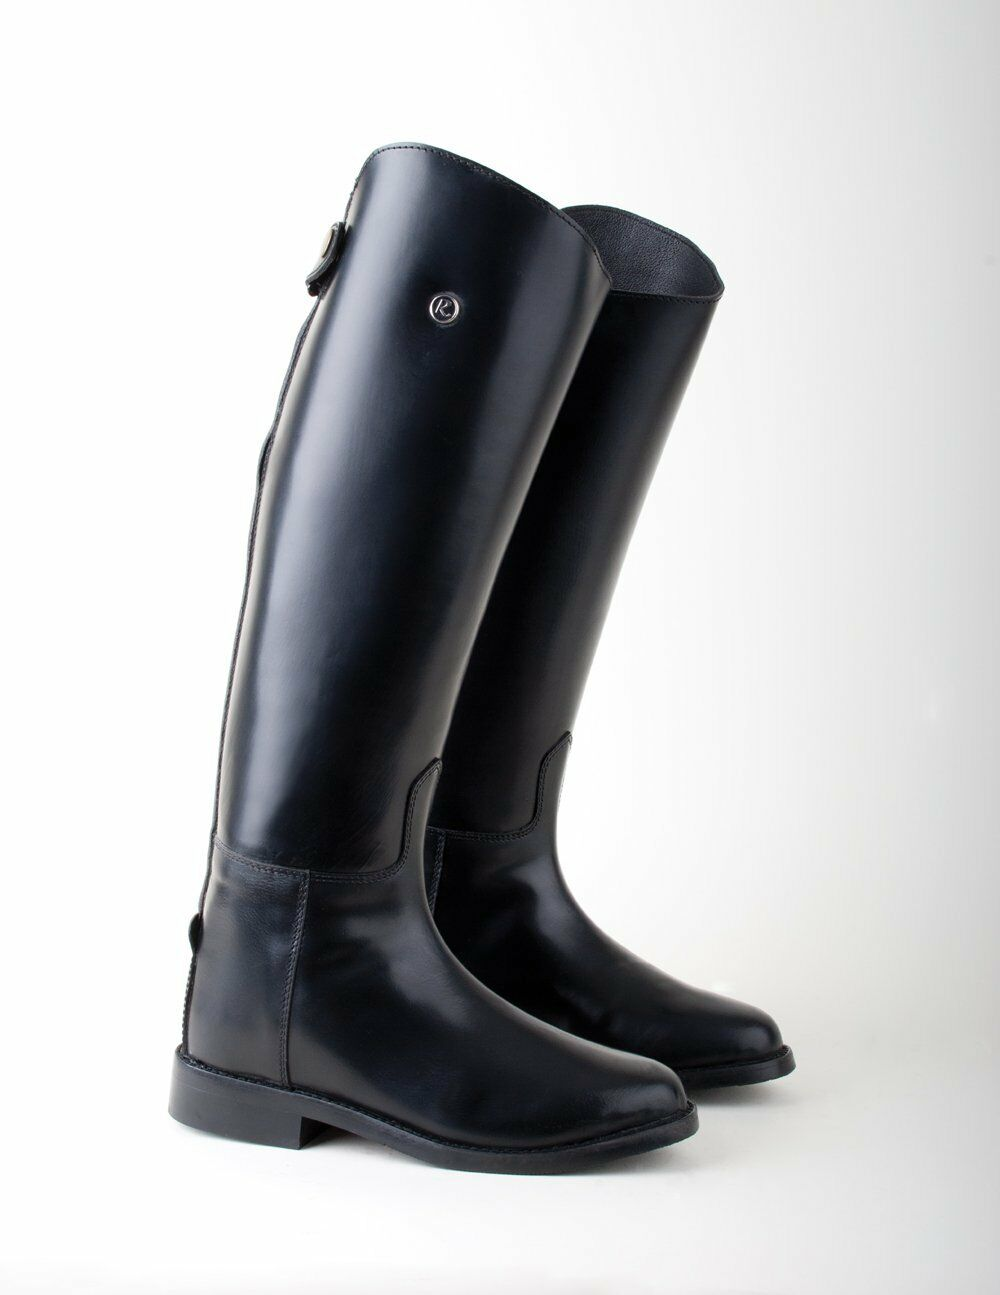 New Olympic Long Riding Boots - Showing, Dressage, NEW - SPECIAL OFFER PRICE